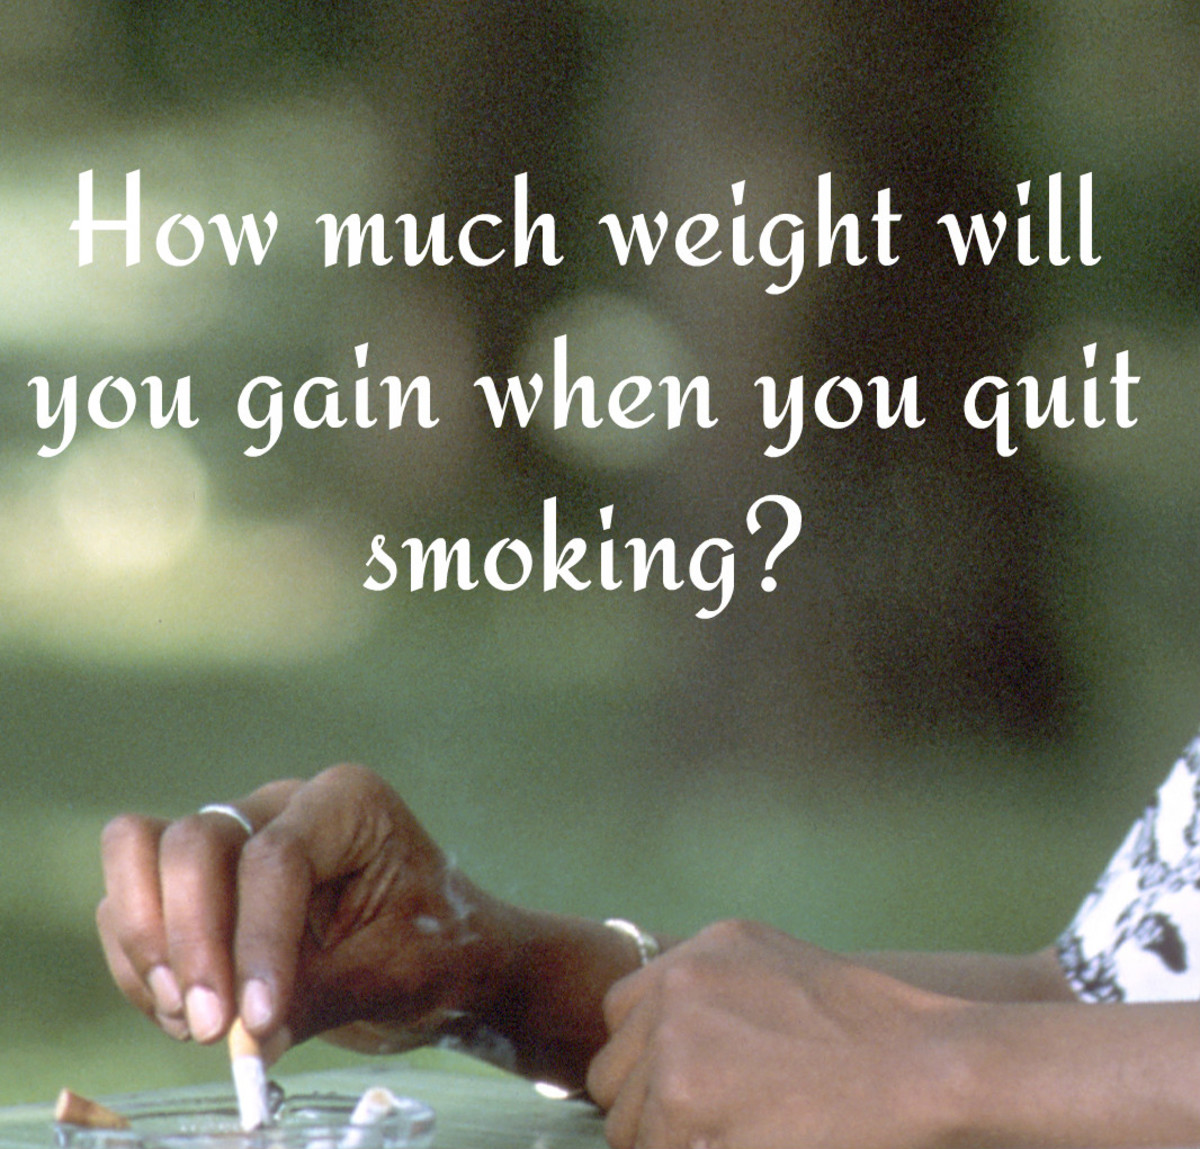 Why You Gain Weight When You Quit Smoking and What to Do About it